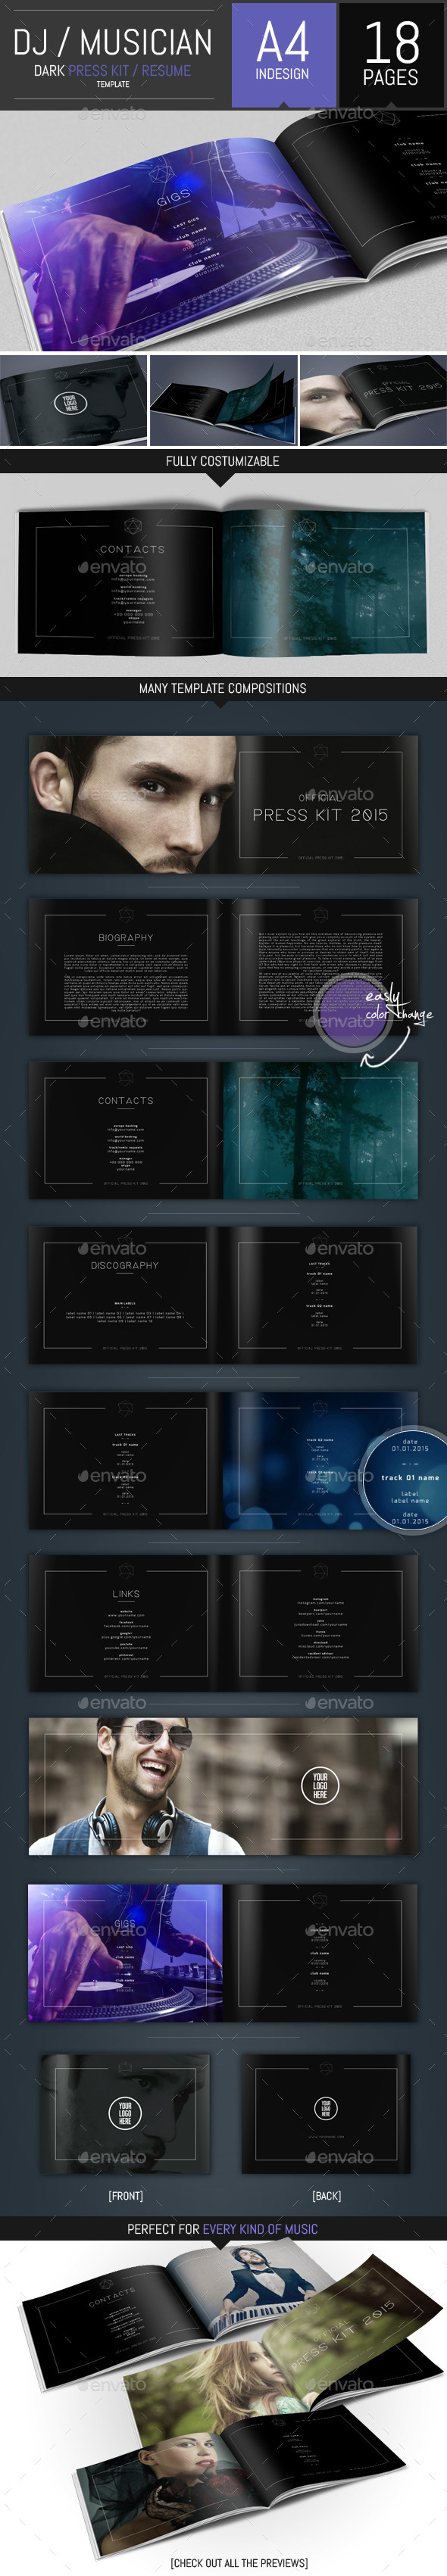 Dj and Musician Dark Press Kit / Resume Template by DogmaDesign ...